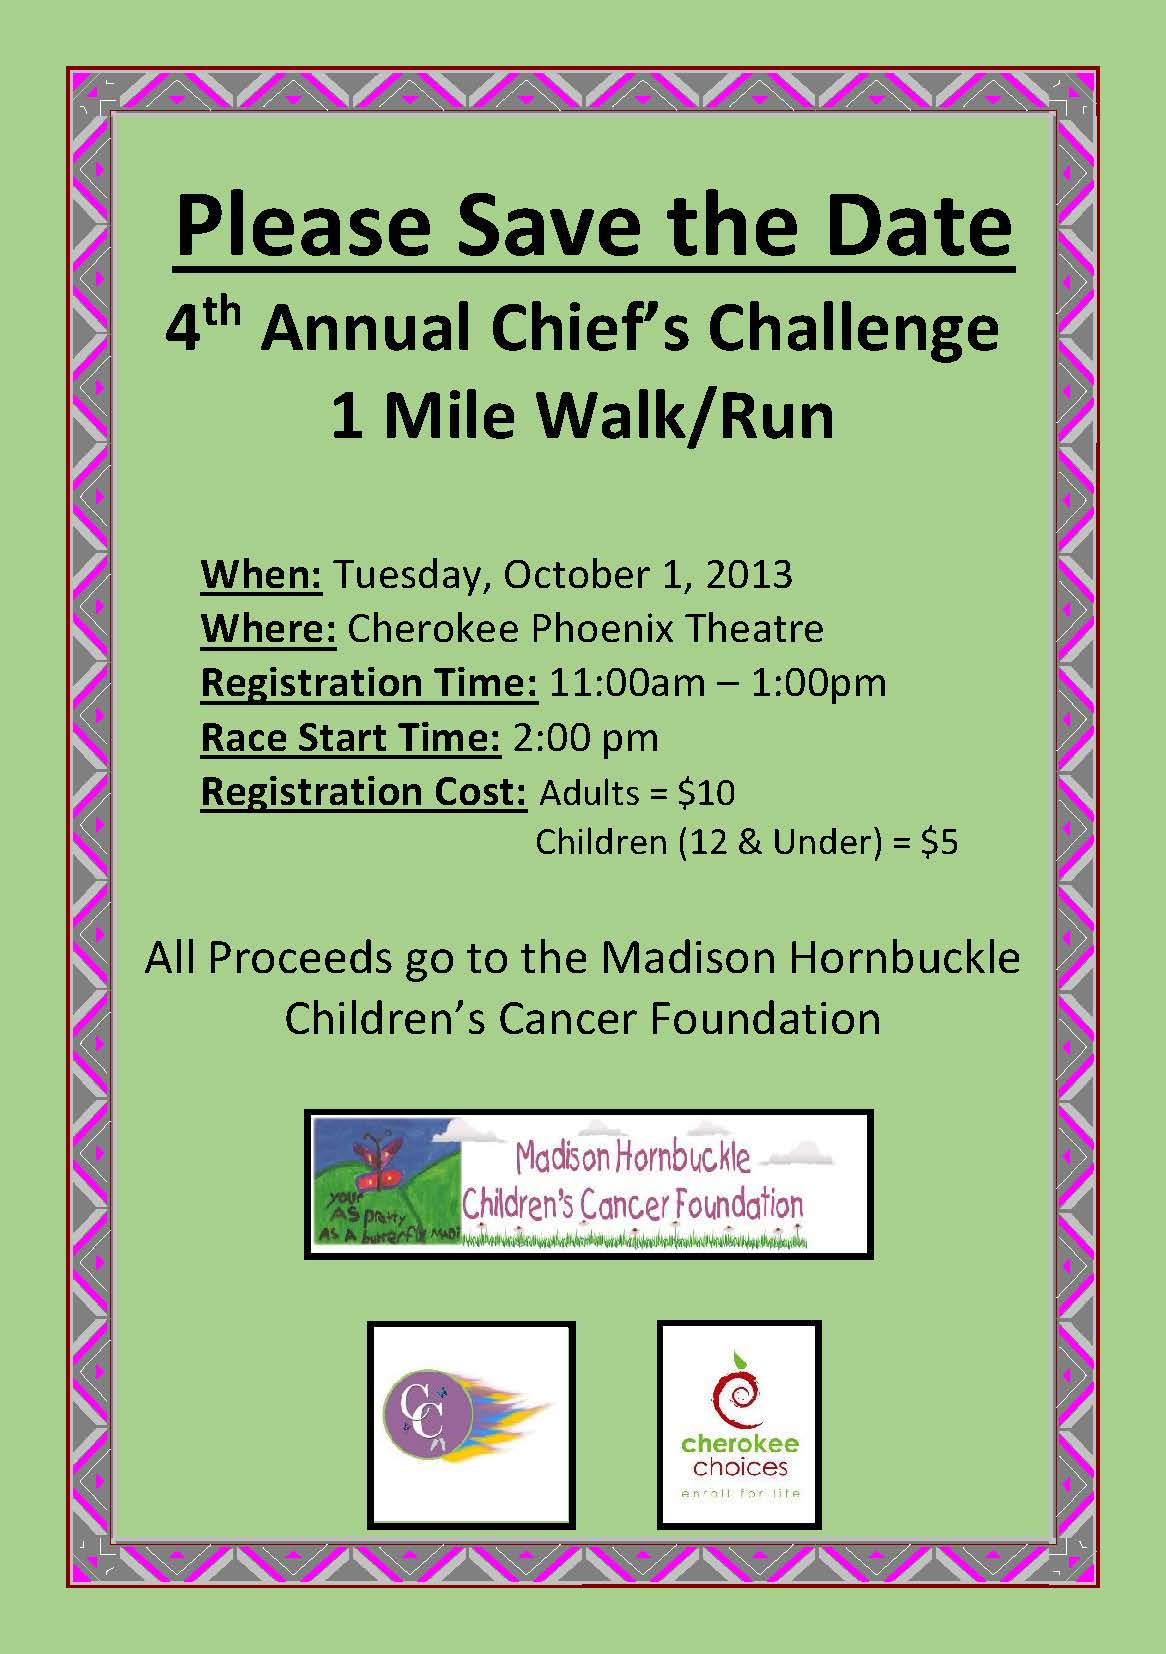 Save the Date Flyer_Chief's Challenge